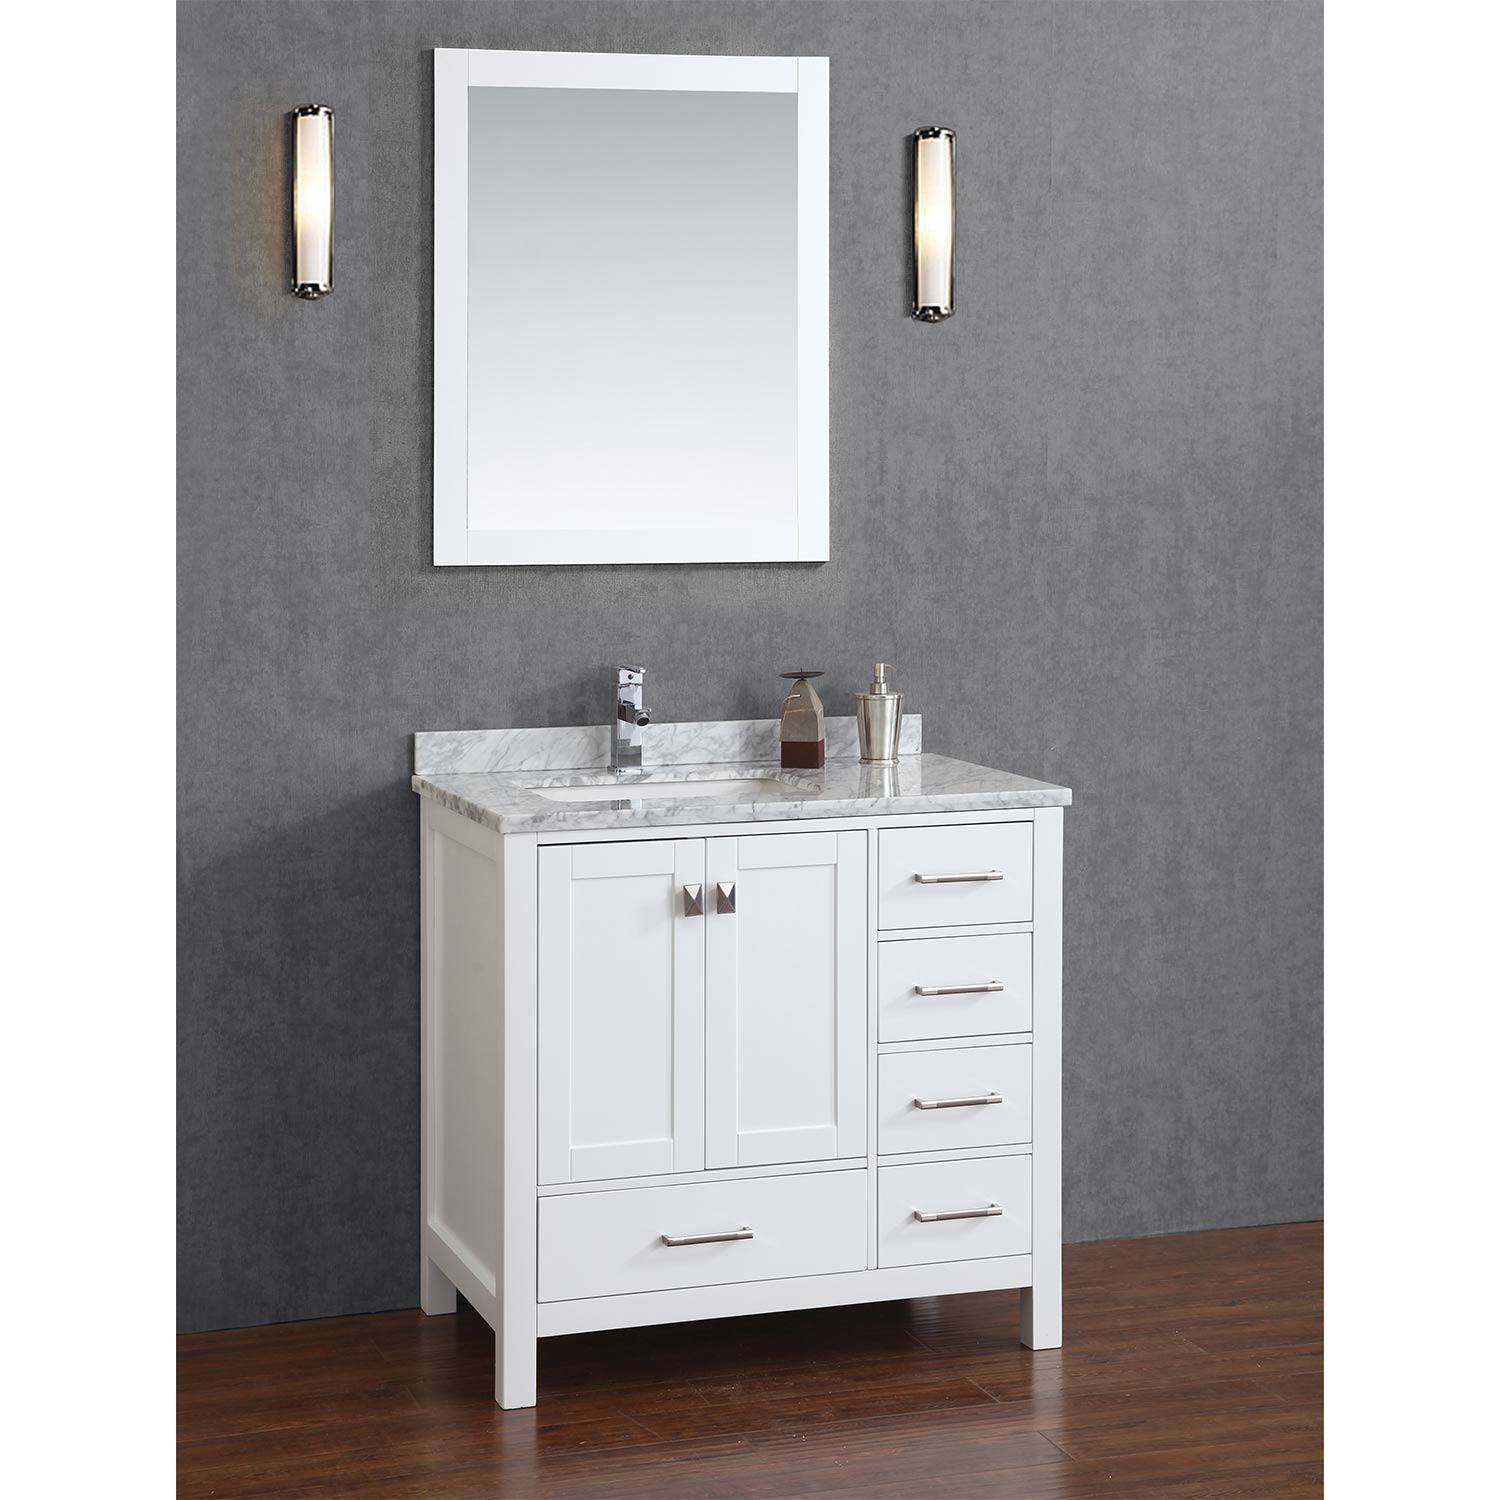 Buy vincent 36 inch solid wood single bathroom vanity in white hm 13001 36 wmsq wt Solid wood bathroom vanities cabinets